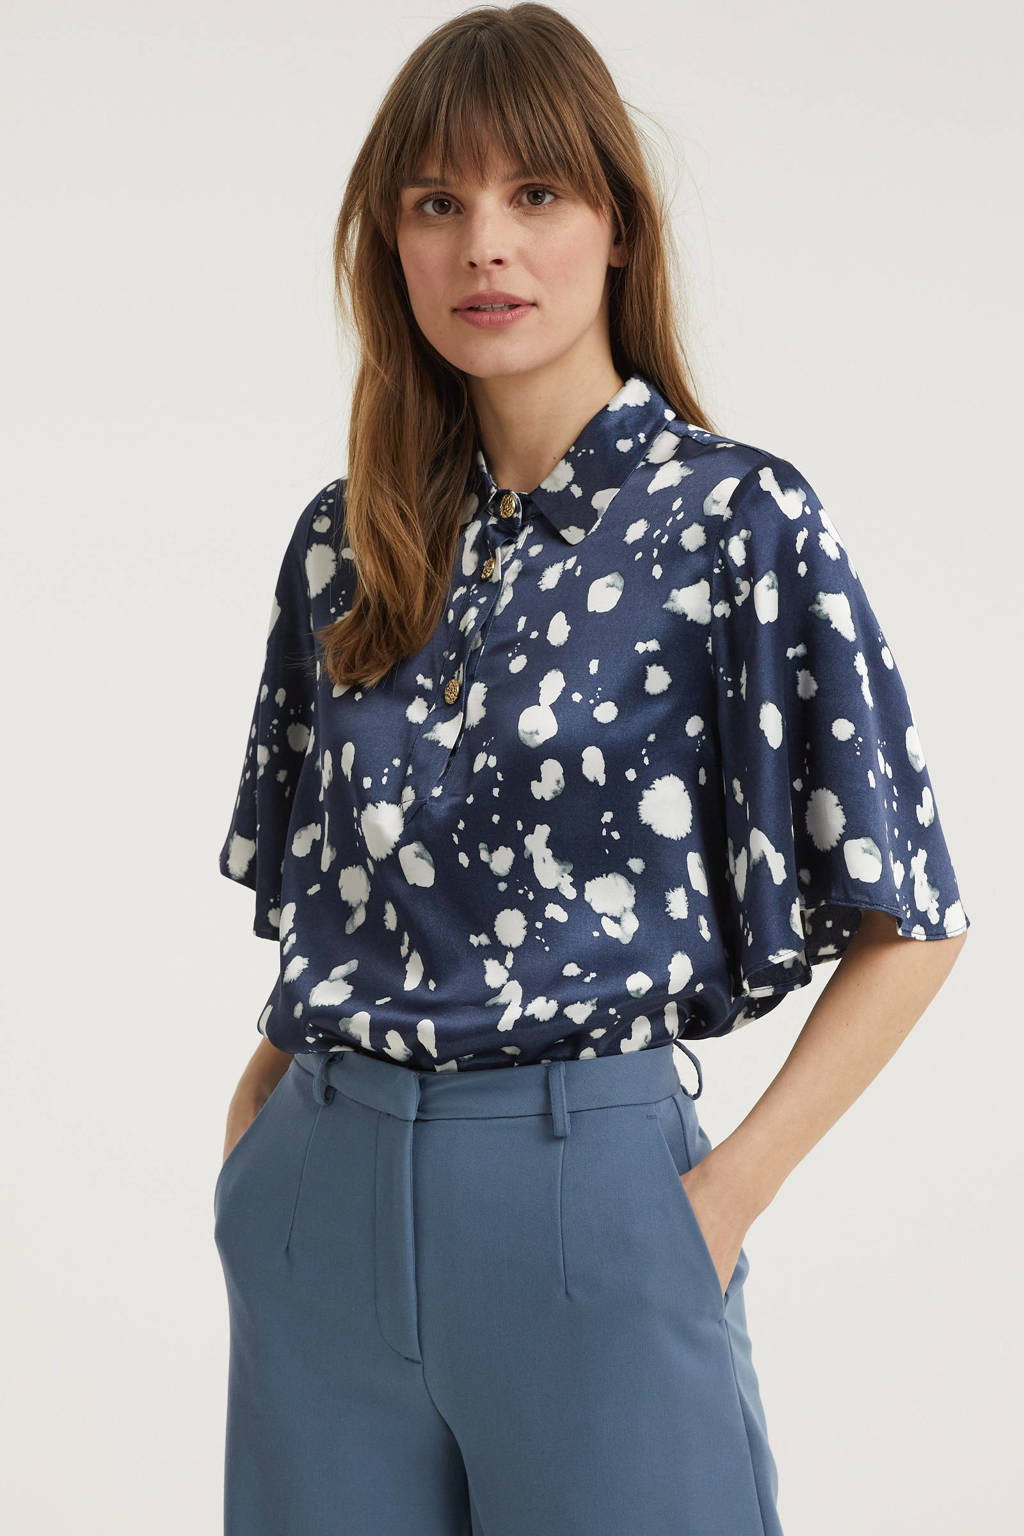 SELECTED FEMME blouse met all over print donkerblauw, Donkerblauw